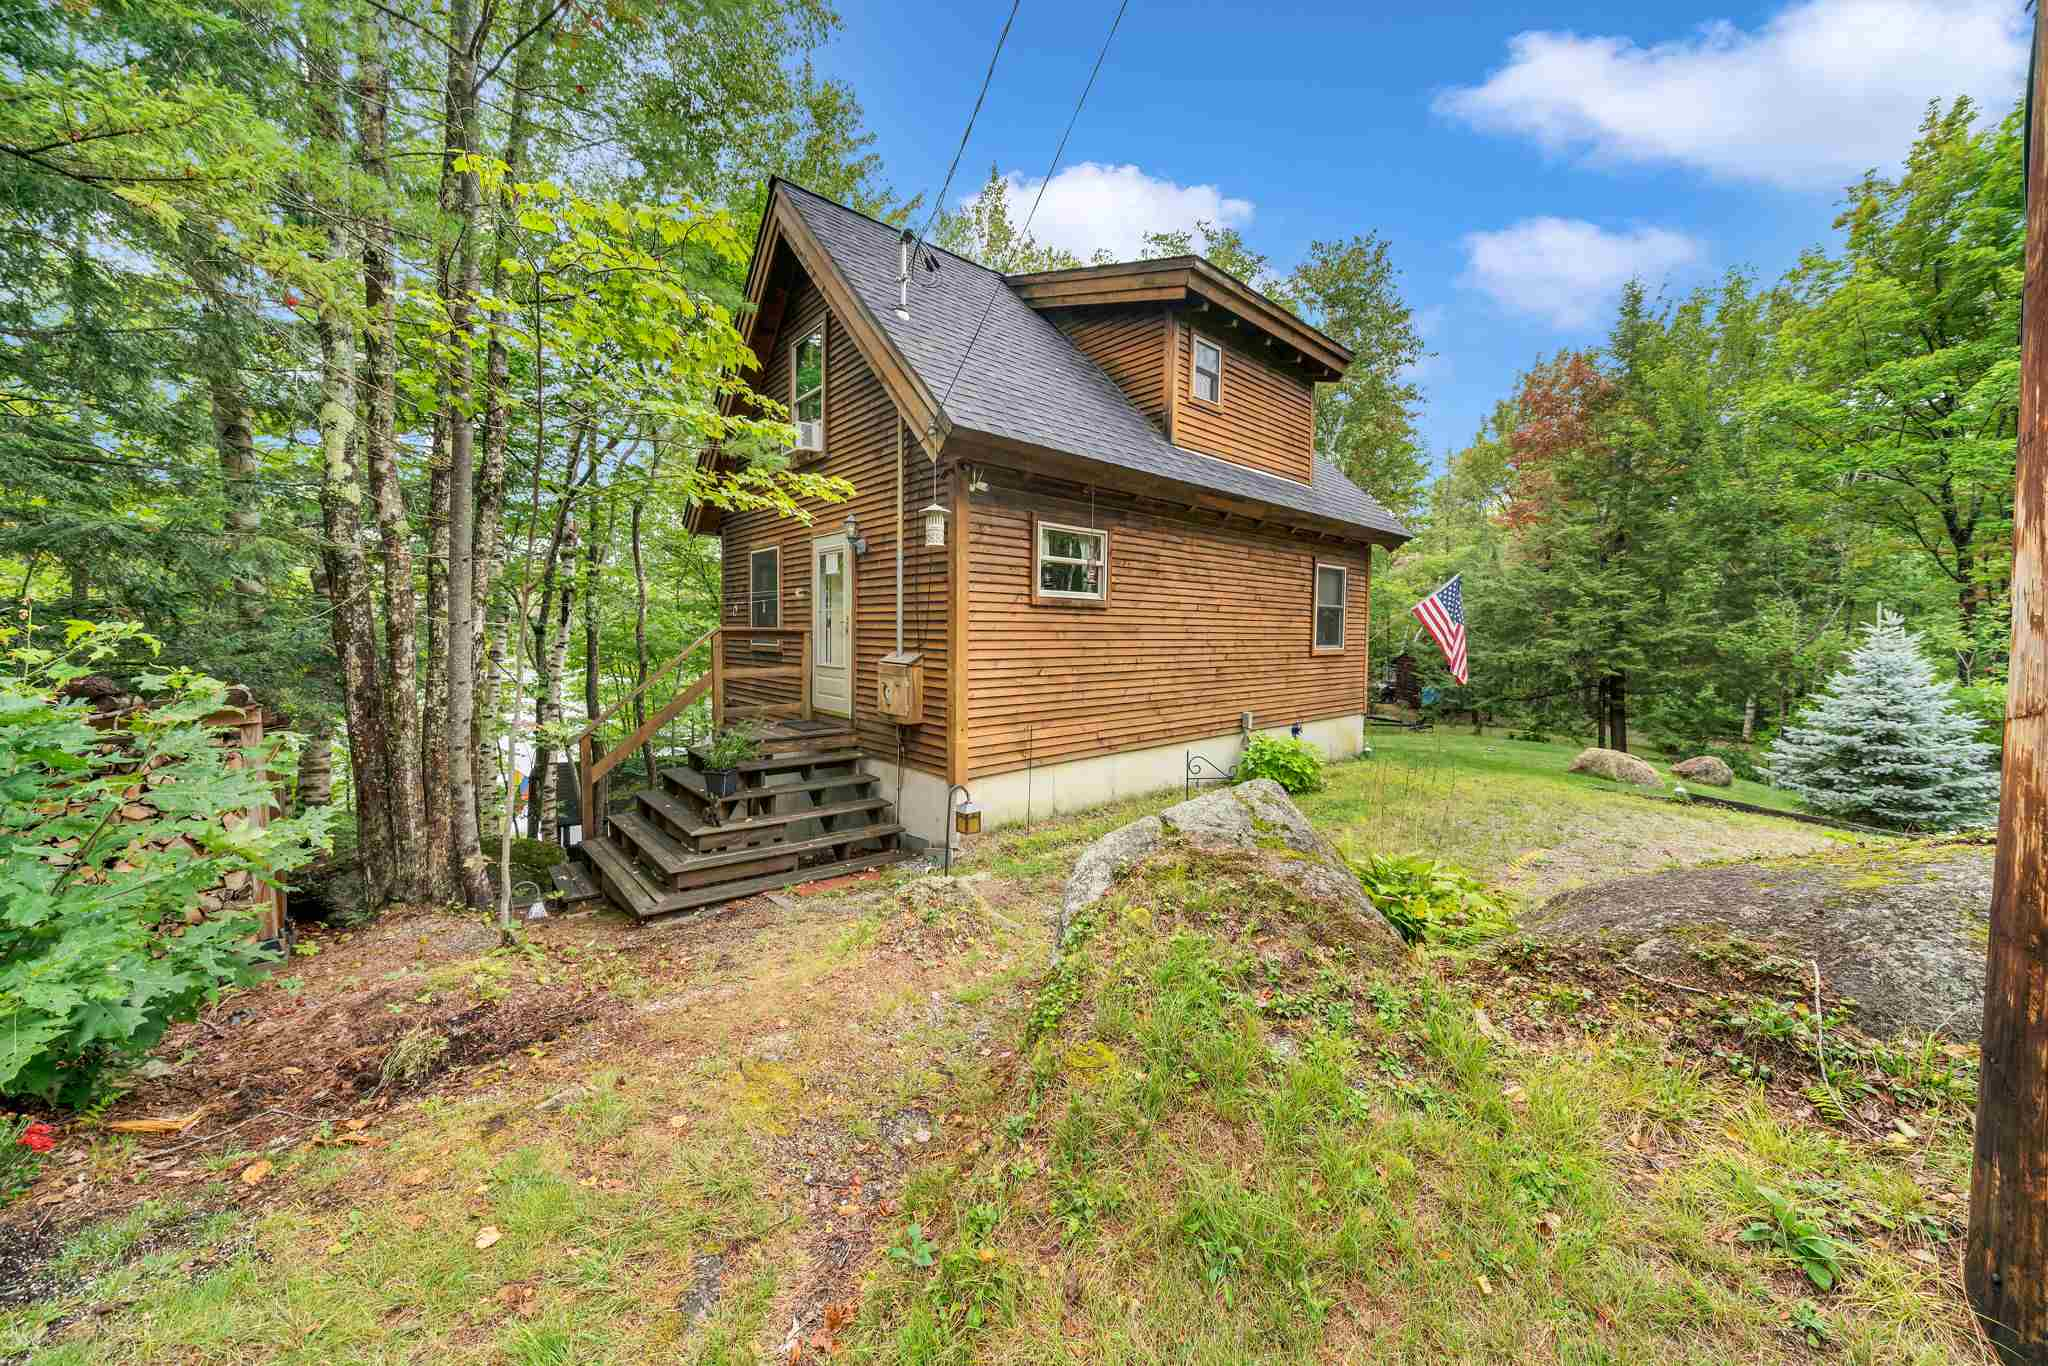 MLS 4828317: 674 East Shore Drive, Stoddard NH